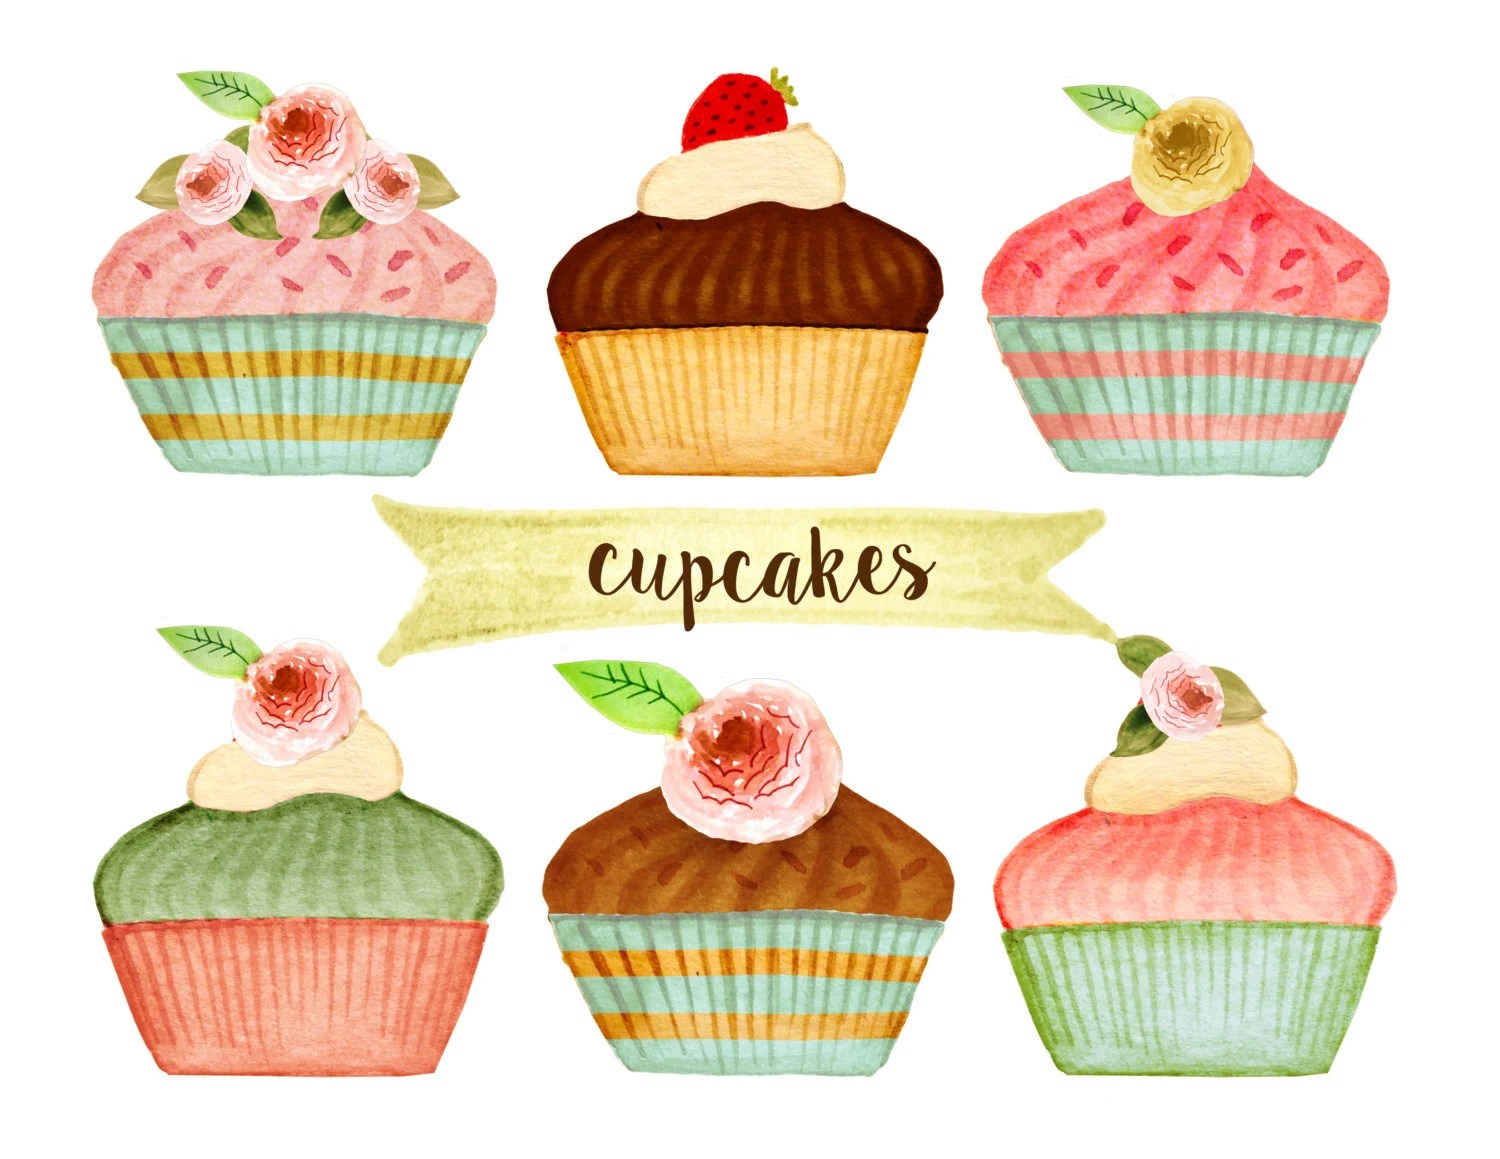 Cupcakes And Cakes Clip Art